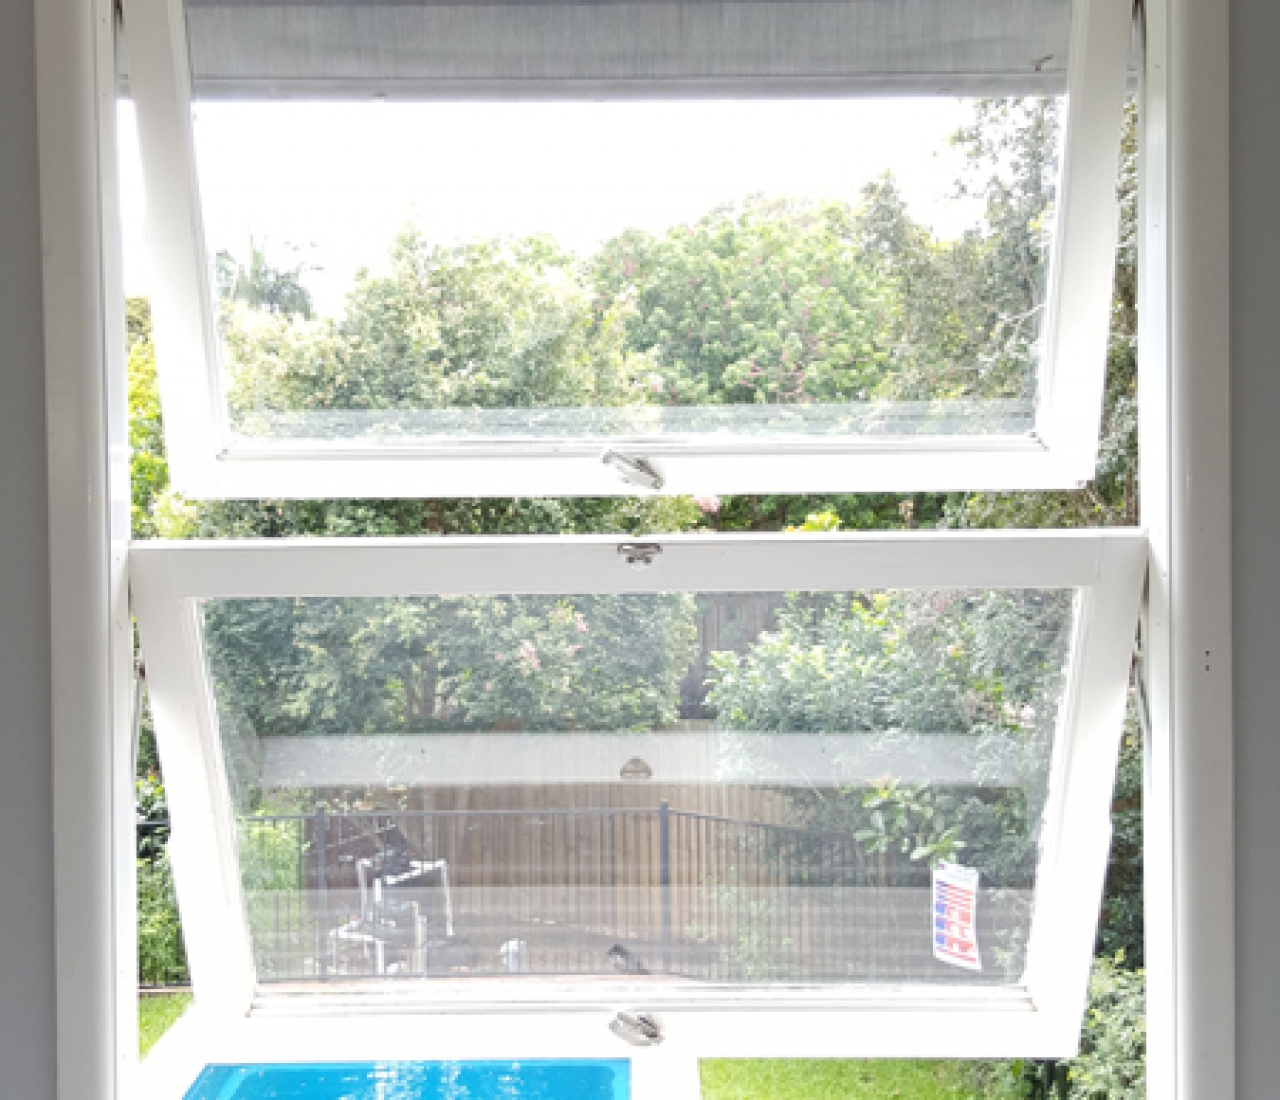 Insect Screens For Flies Mosquitos Bugs Brisbane